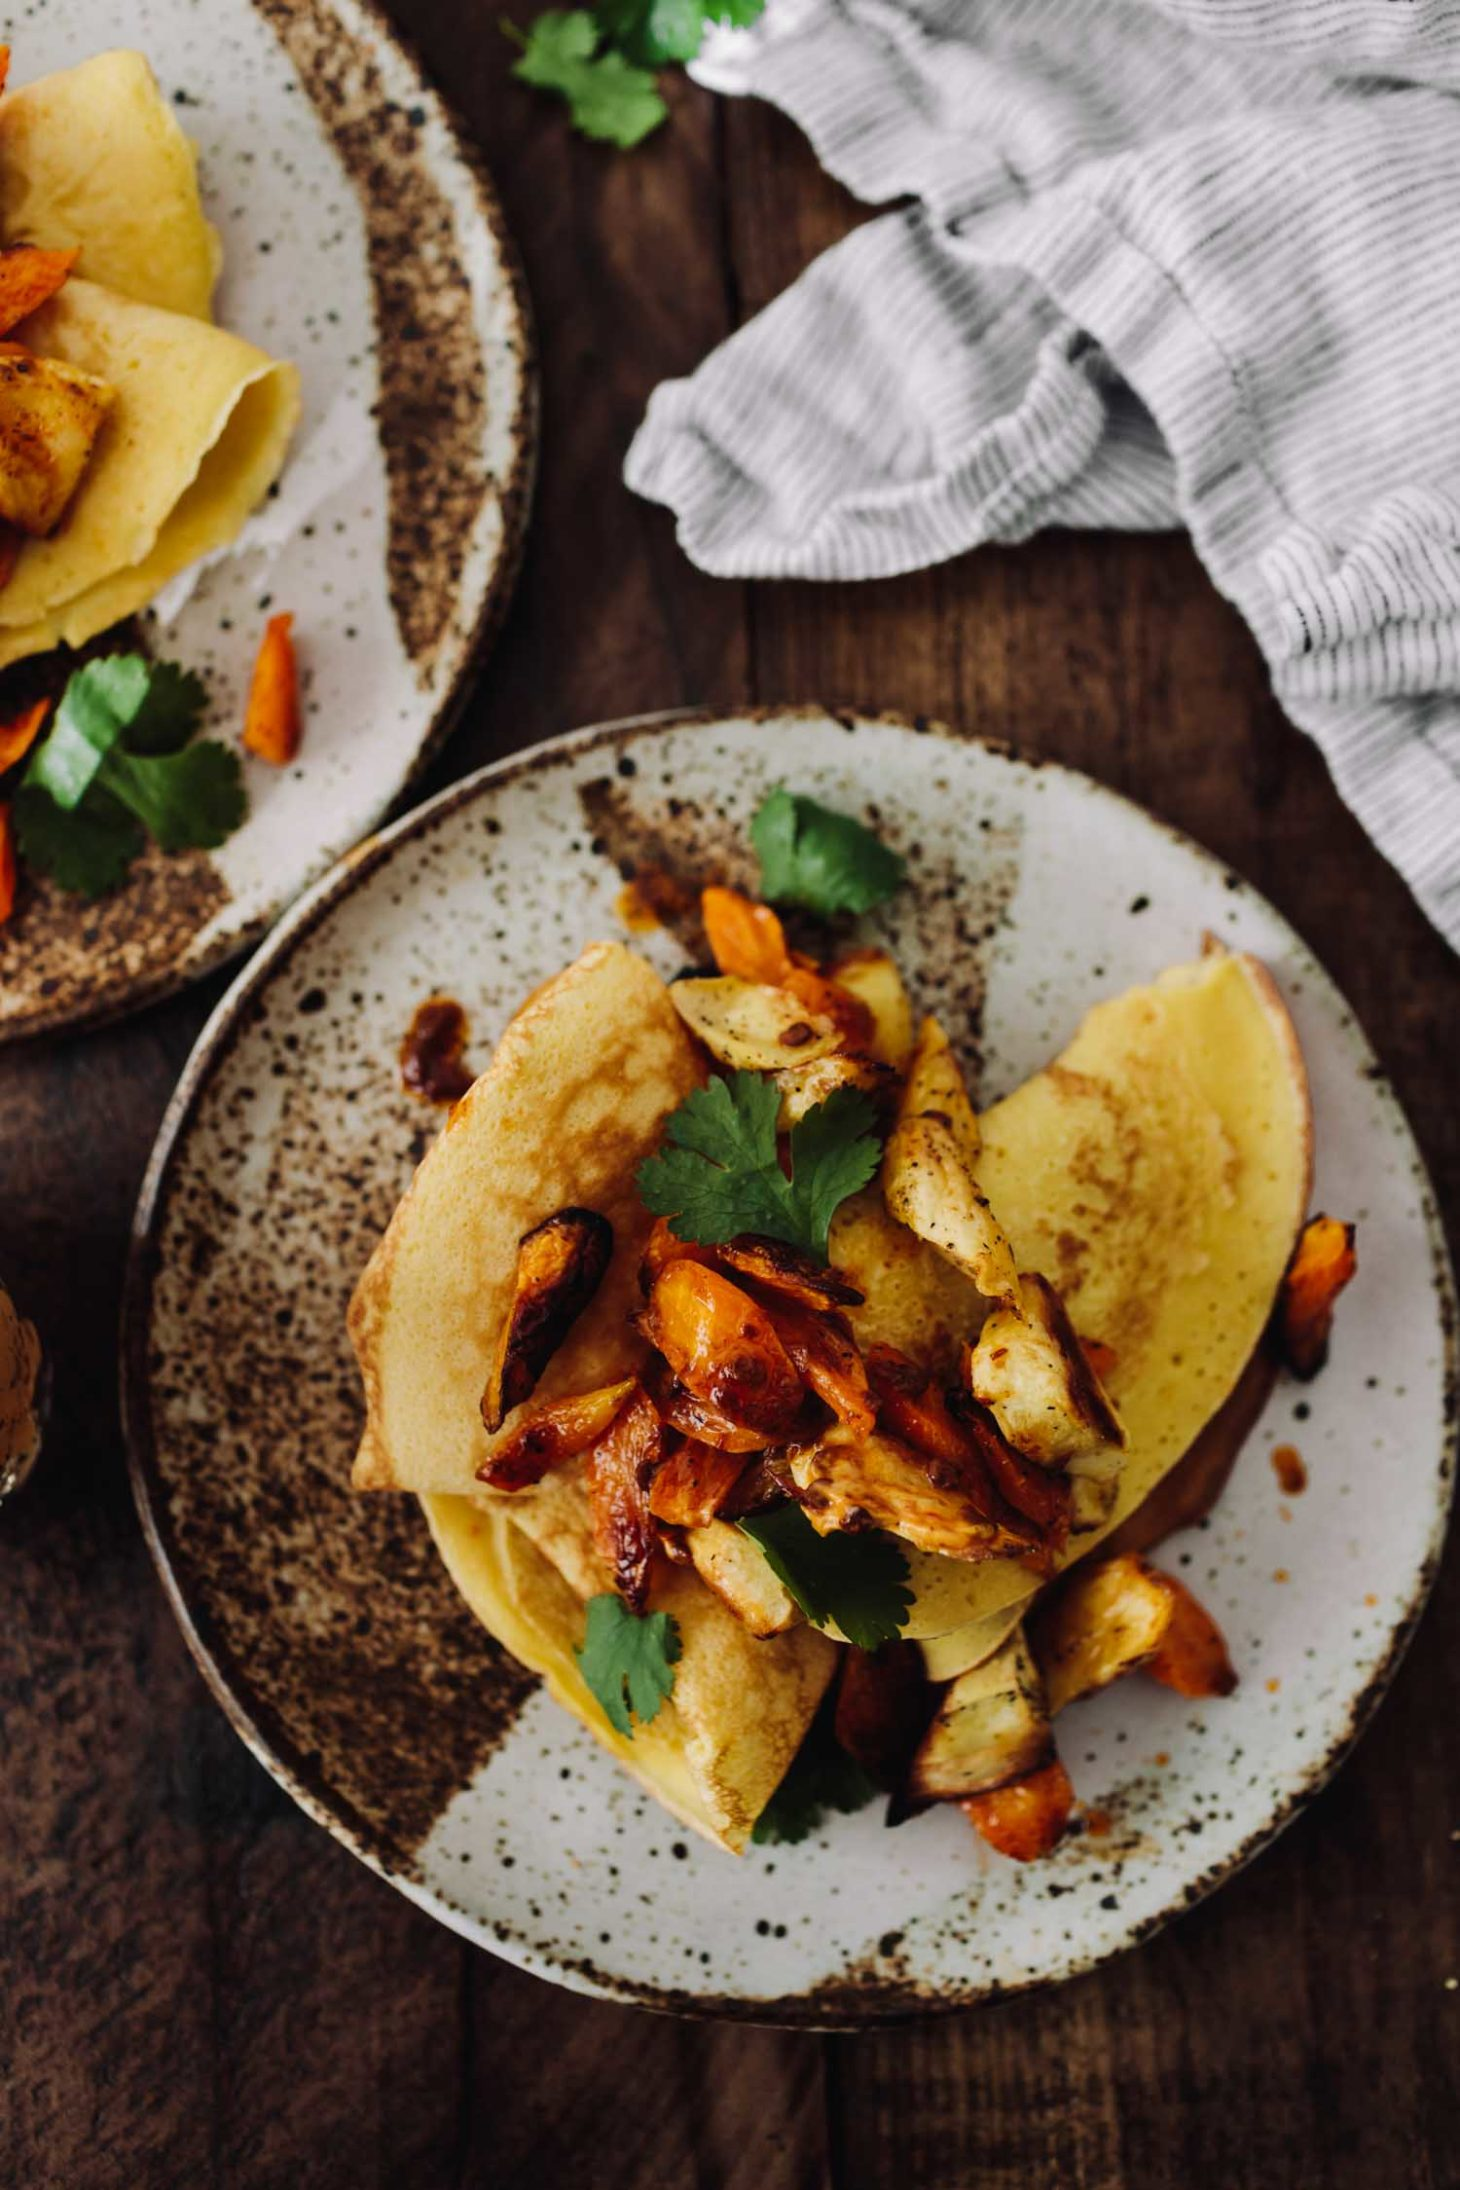 Overhead photo, close-up, of yellow chickpea crepes topped with parsnip and carrot pieces and chipotle compound butter